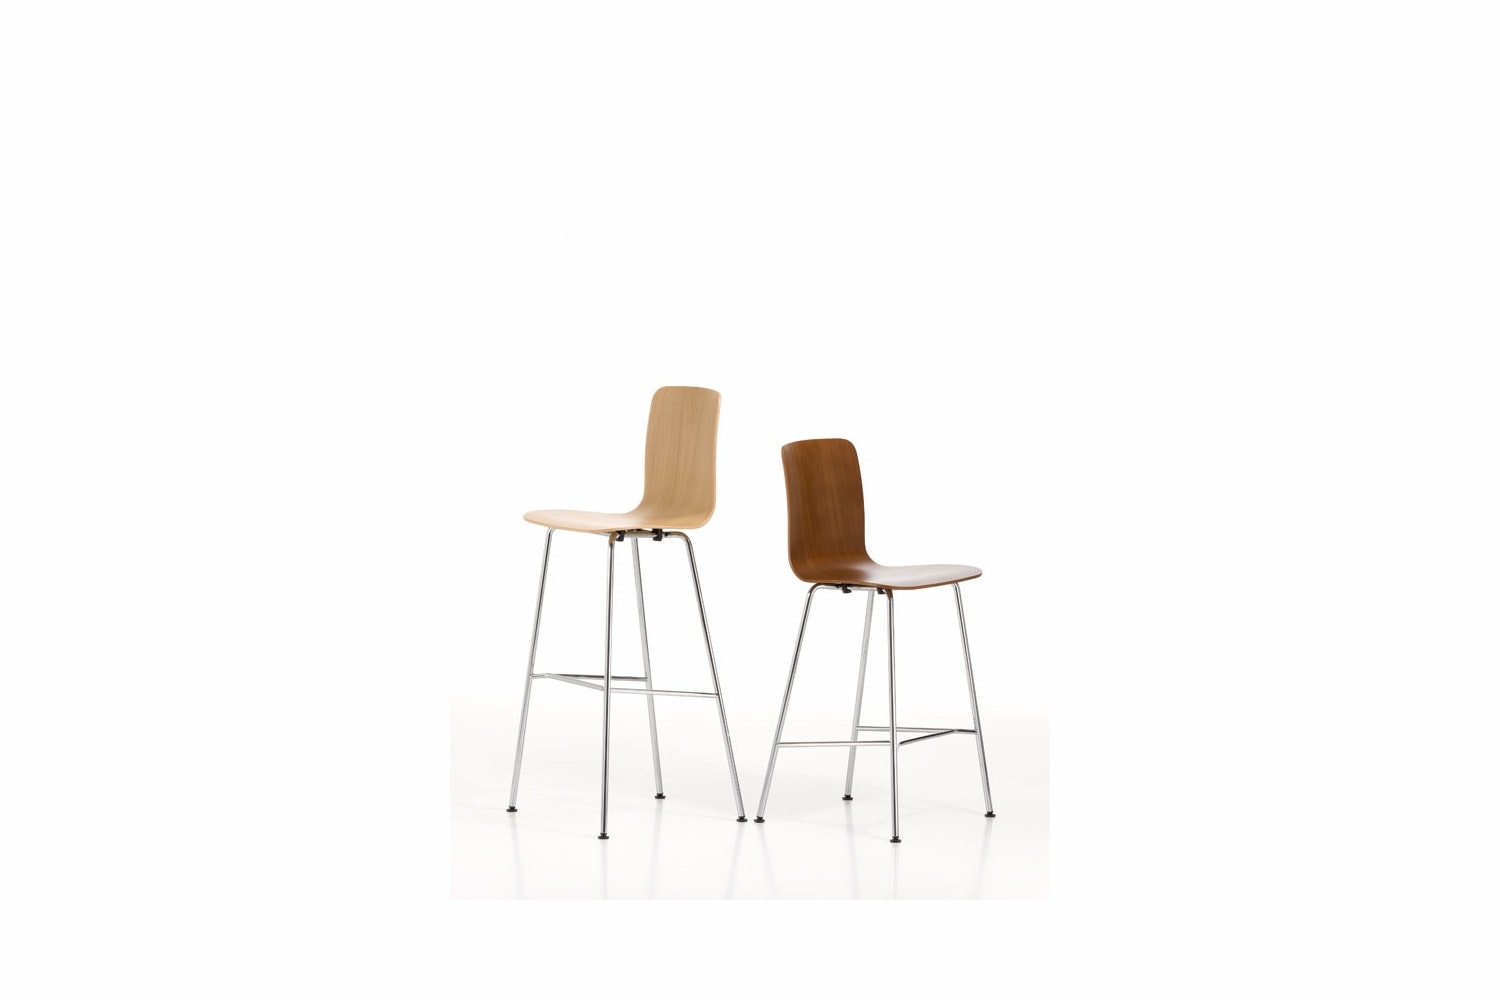 HAL Ply Stool by Jasper Morrison for Vitra